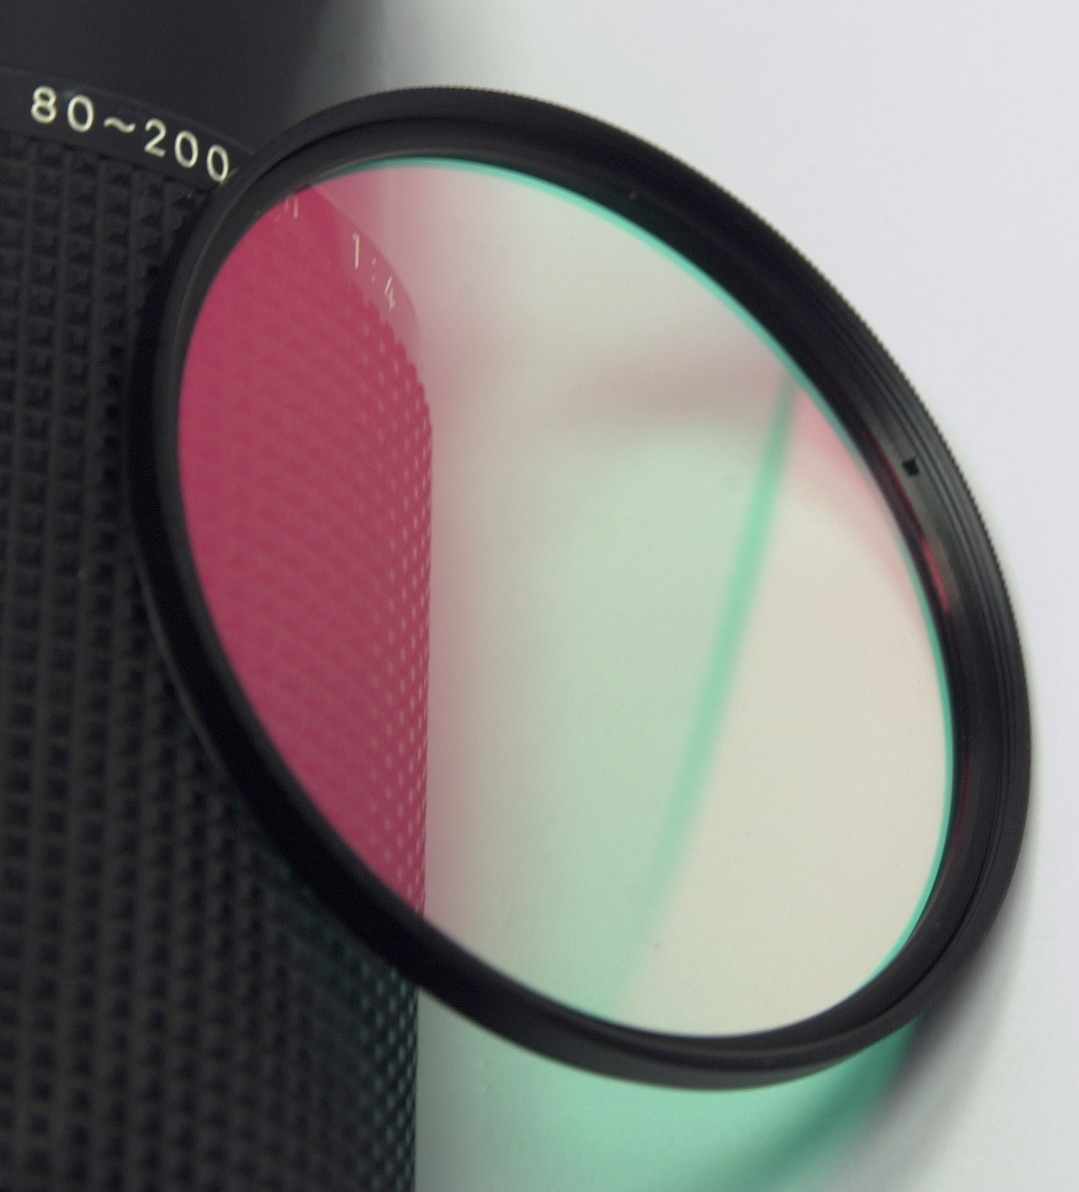 402nm-704nm UV IR Cut Infrared Lens Filte for <font><b>30</b></font> 37 40.5 43 46 49 <font><b>52</b></font> 55 58 62 67 72 77 82 wide angle camera lens image